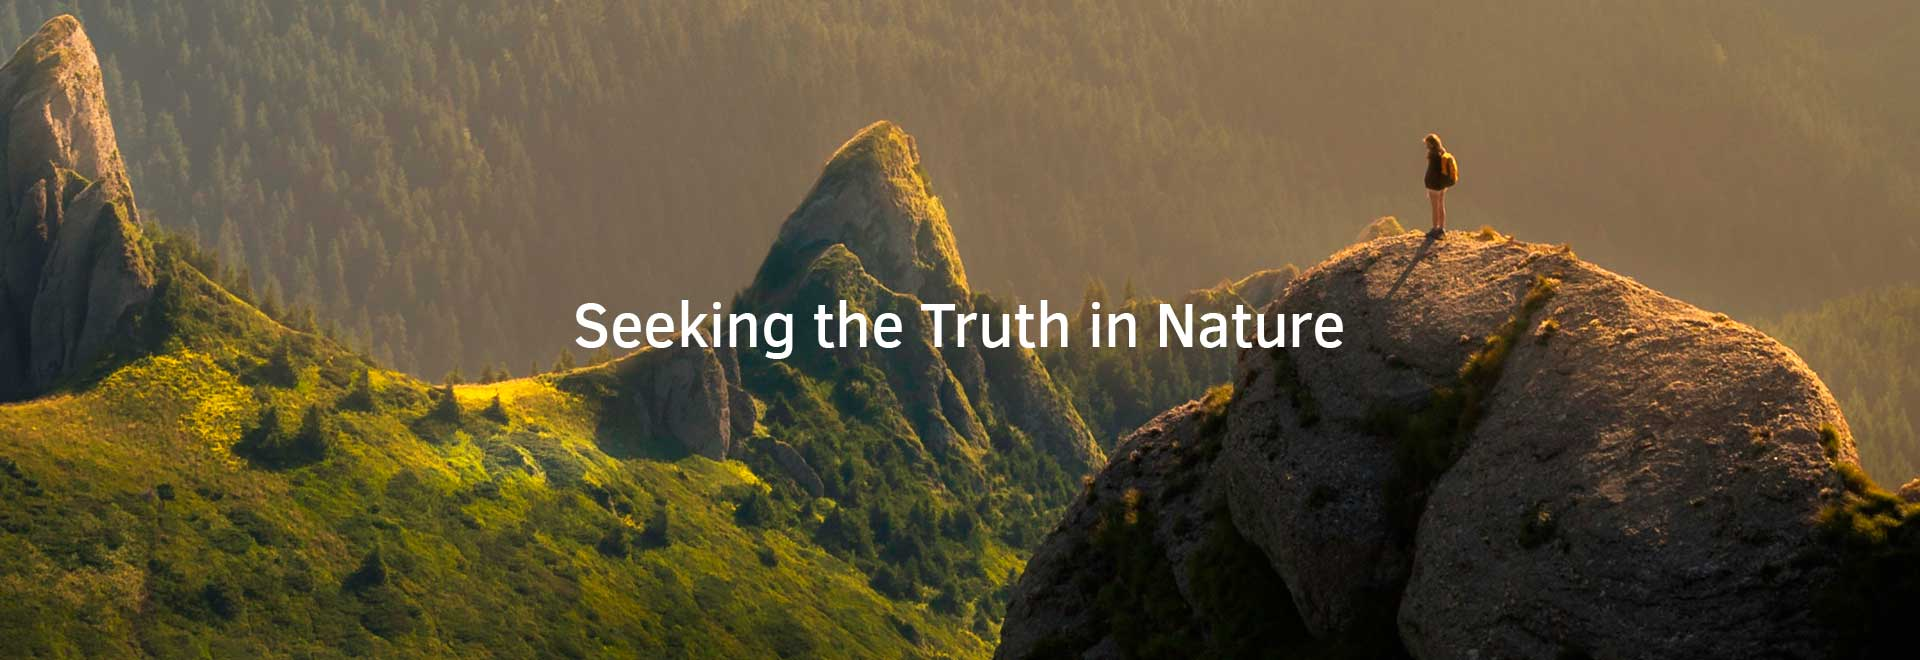 Seeking the Truth in Nature